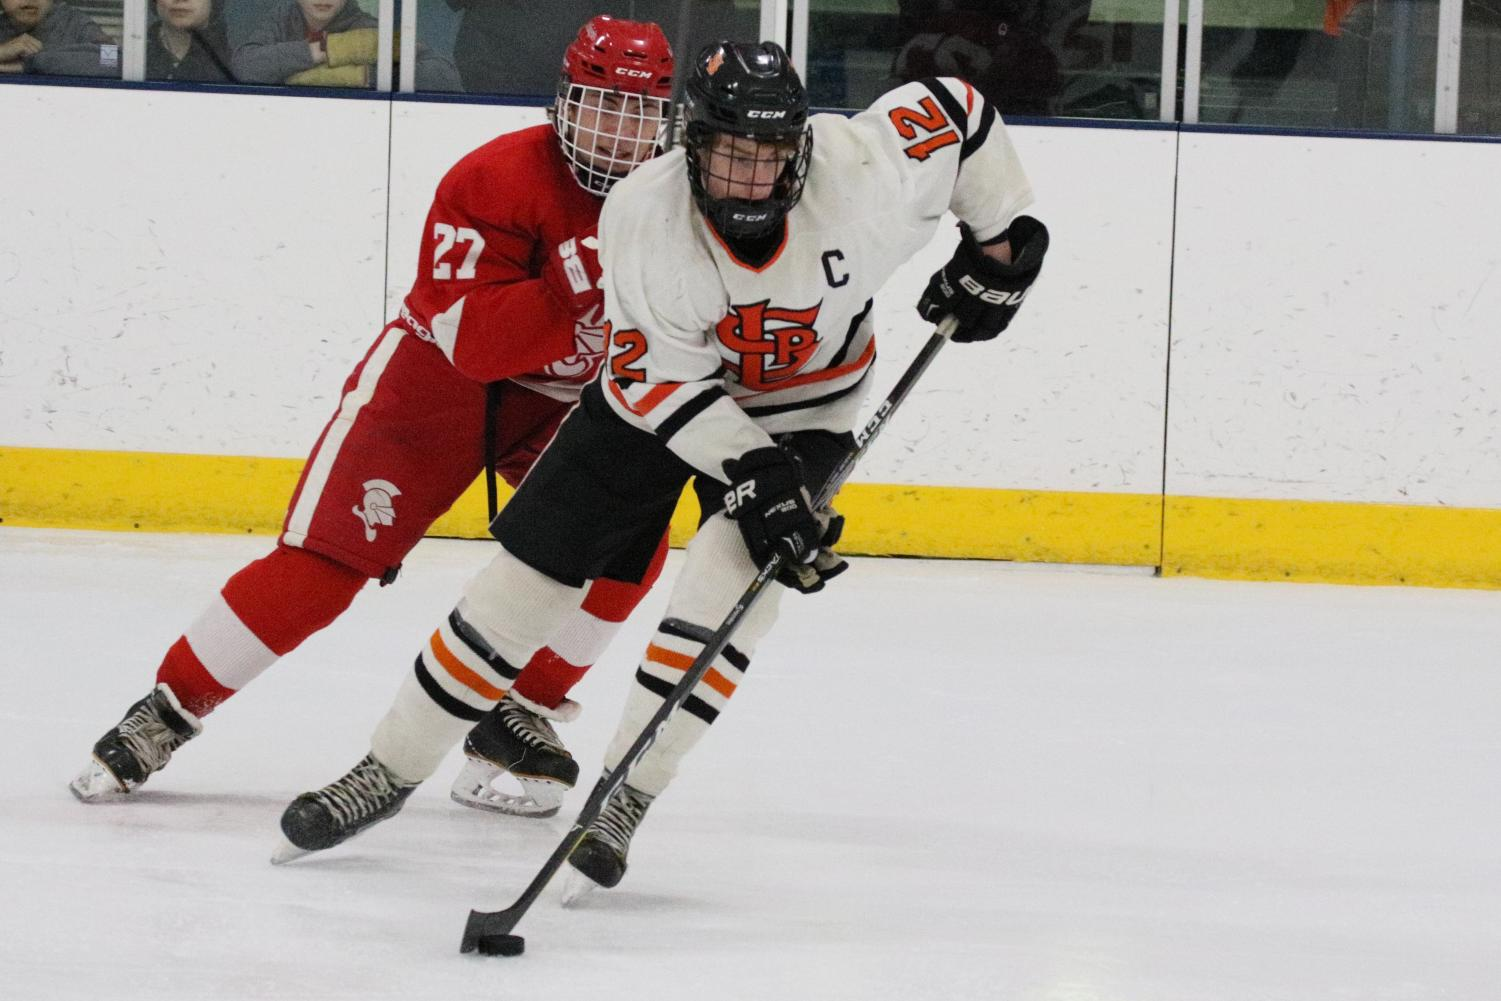 Senior+captain+Shae+Pekarek+carries+the+puck+down+the+ice+in+Parks+4-0+loss+to+Benilde+Feb.+13.+Park+went+scoreless+with+a+goal+being+called+off+in+the+second+period.